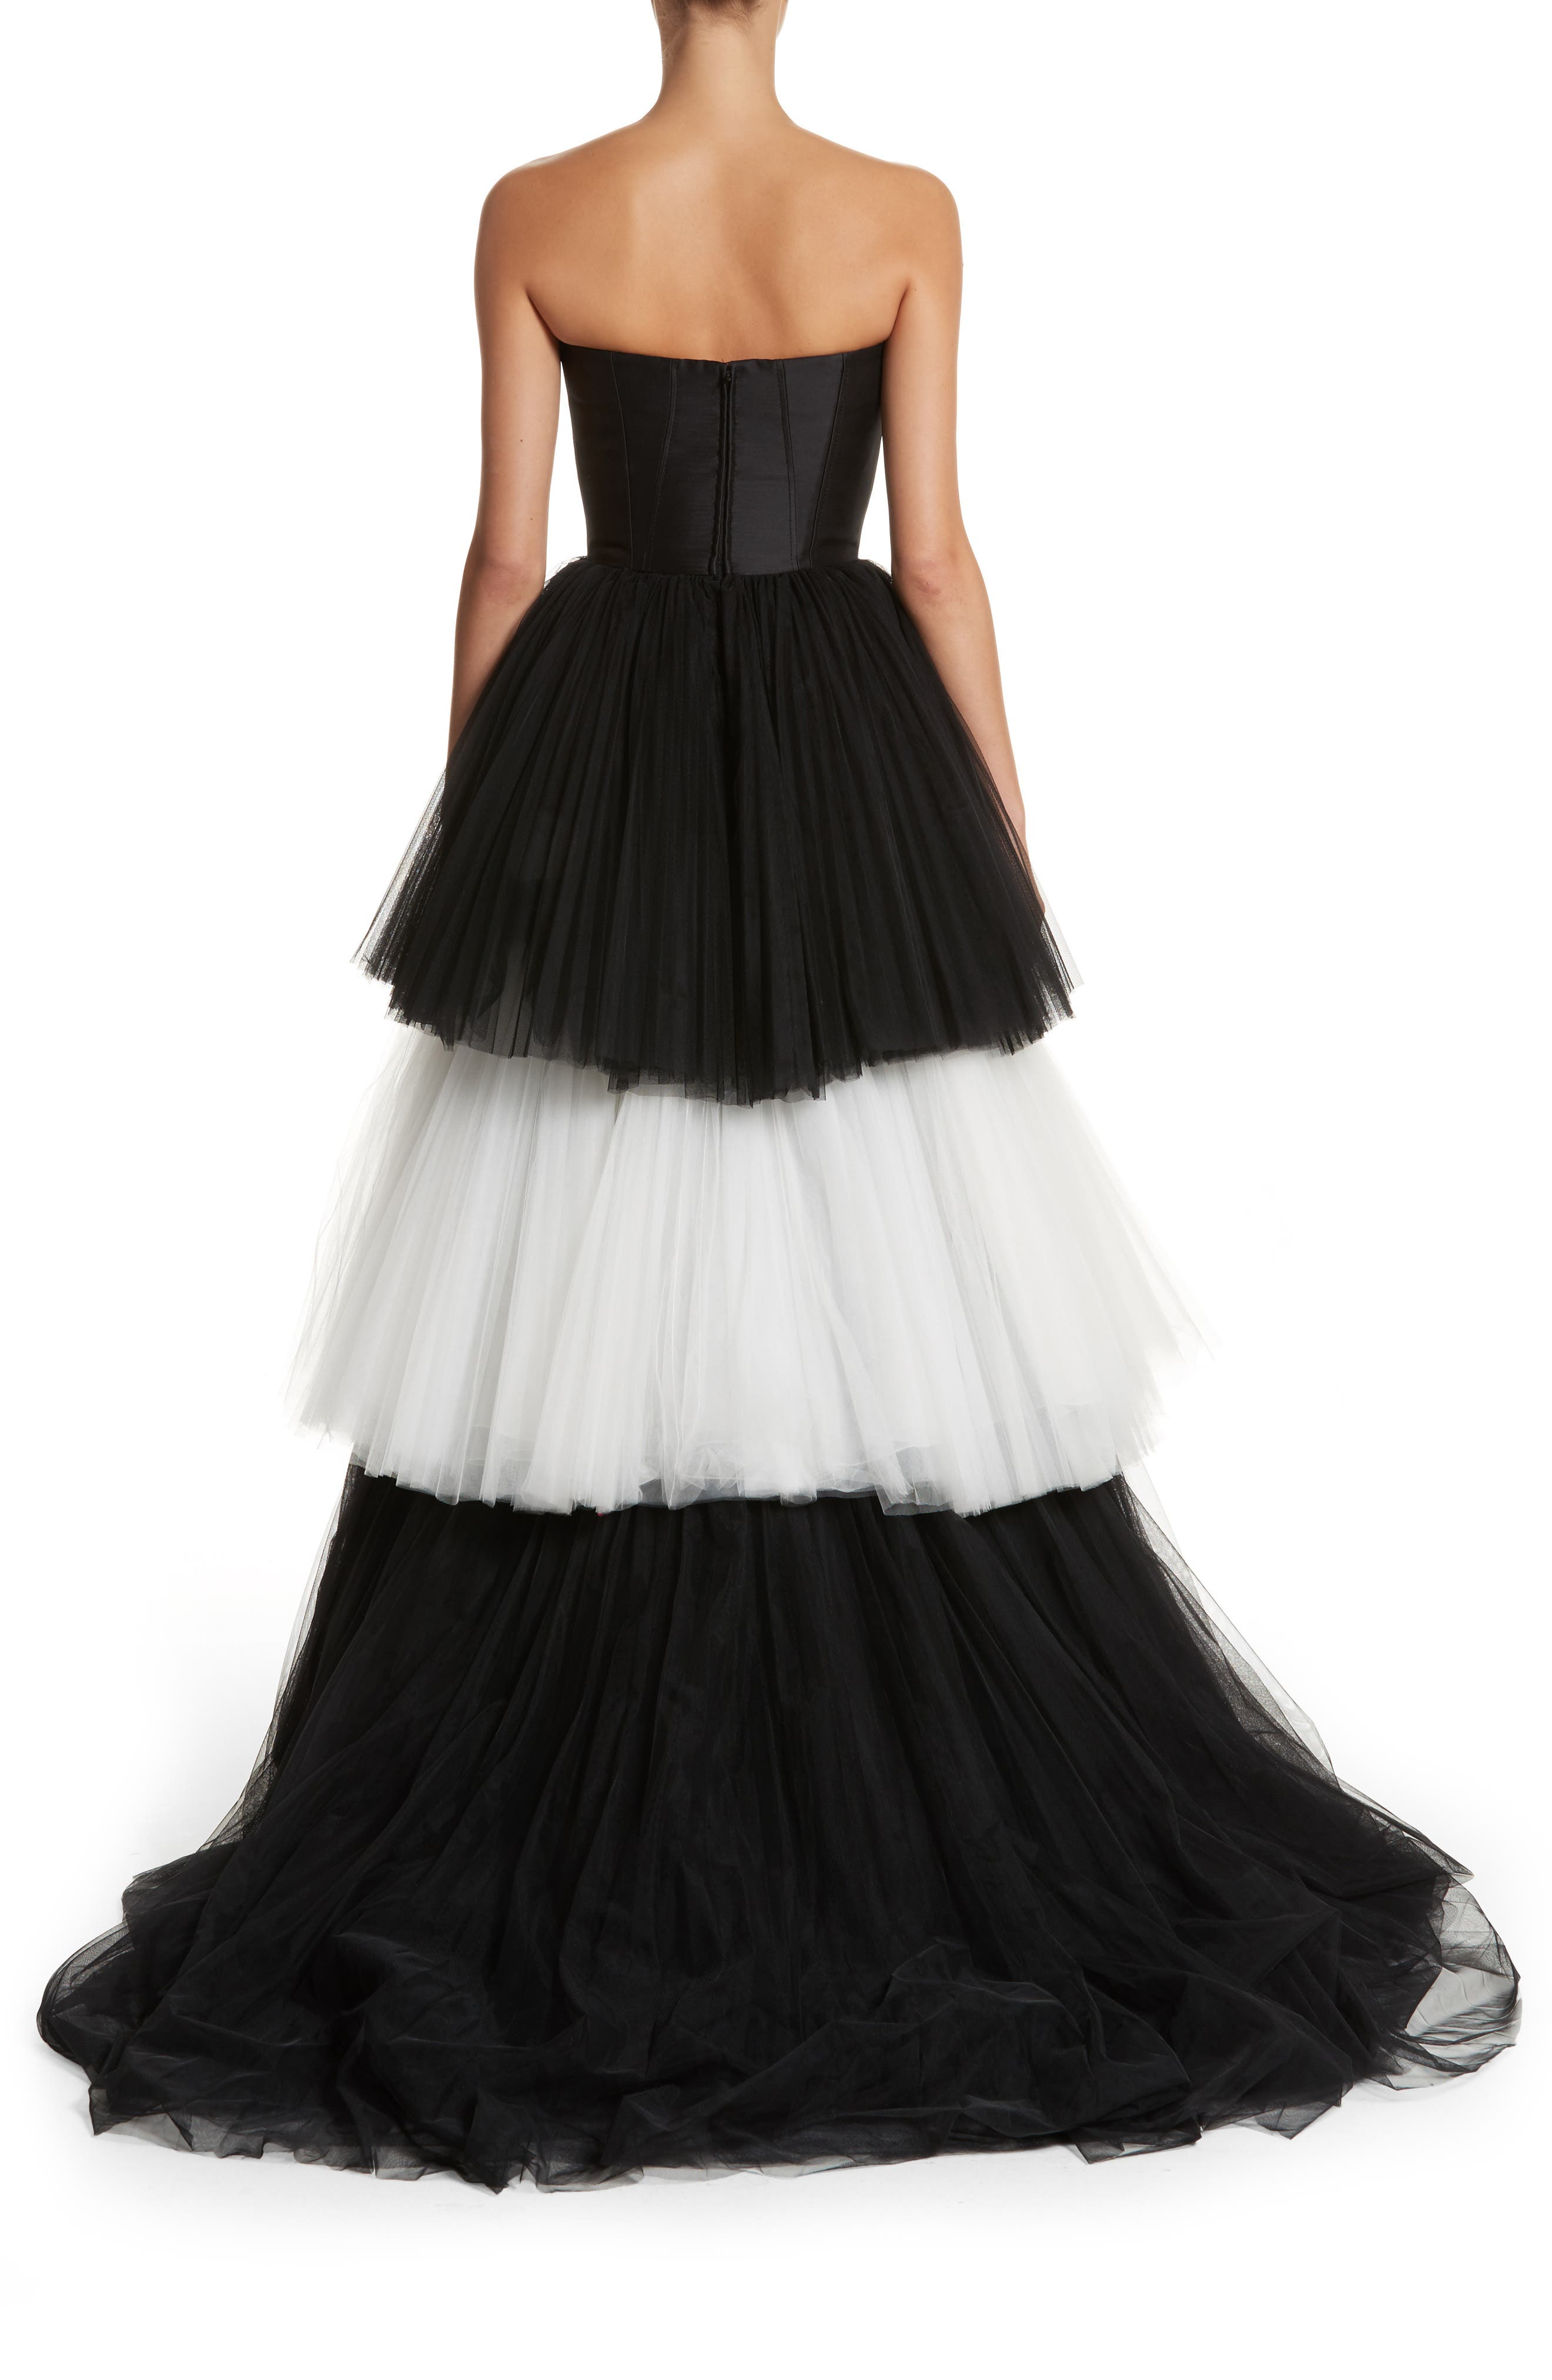 Strapless Layered Tulle Gown,                             Alternate thumbnail 2, color,                             Black/White